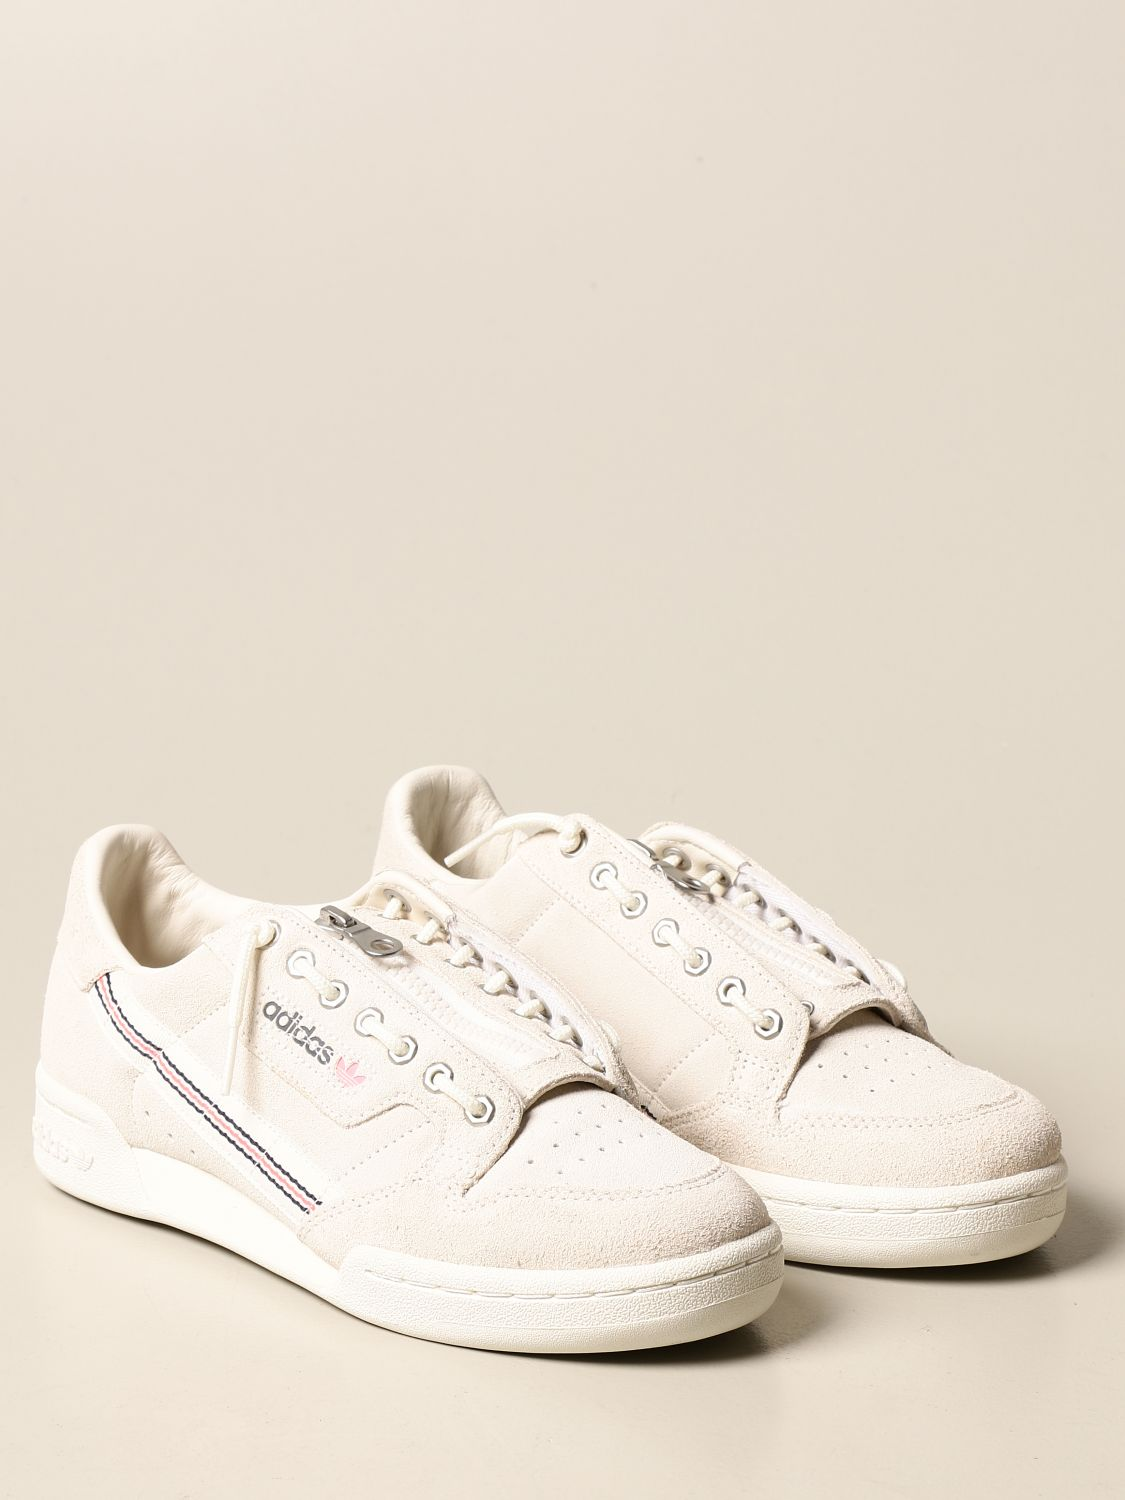 Trainers Adidas Originals: Shoes men Adidas Originals yellow cream 2